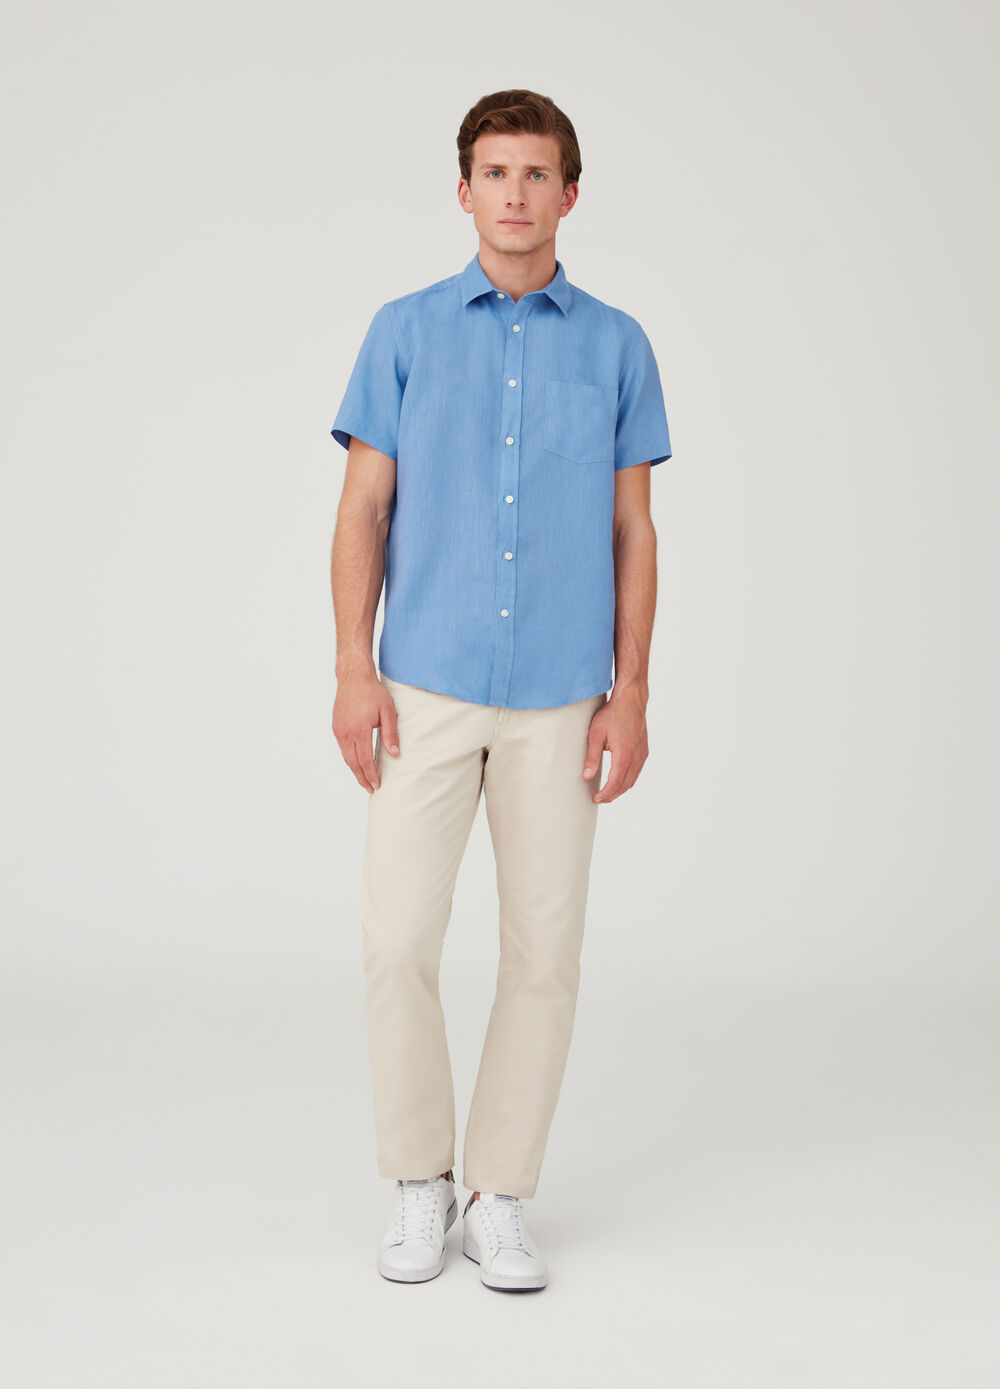 Shirt with bluff collar and short sleeves